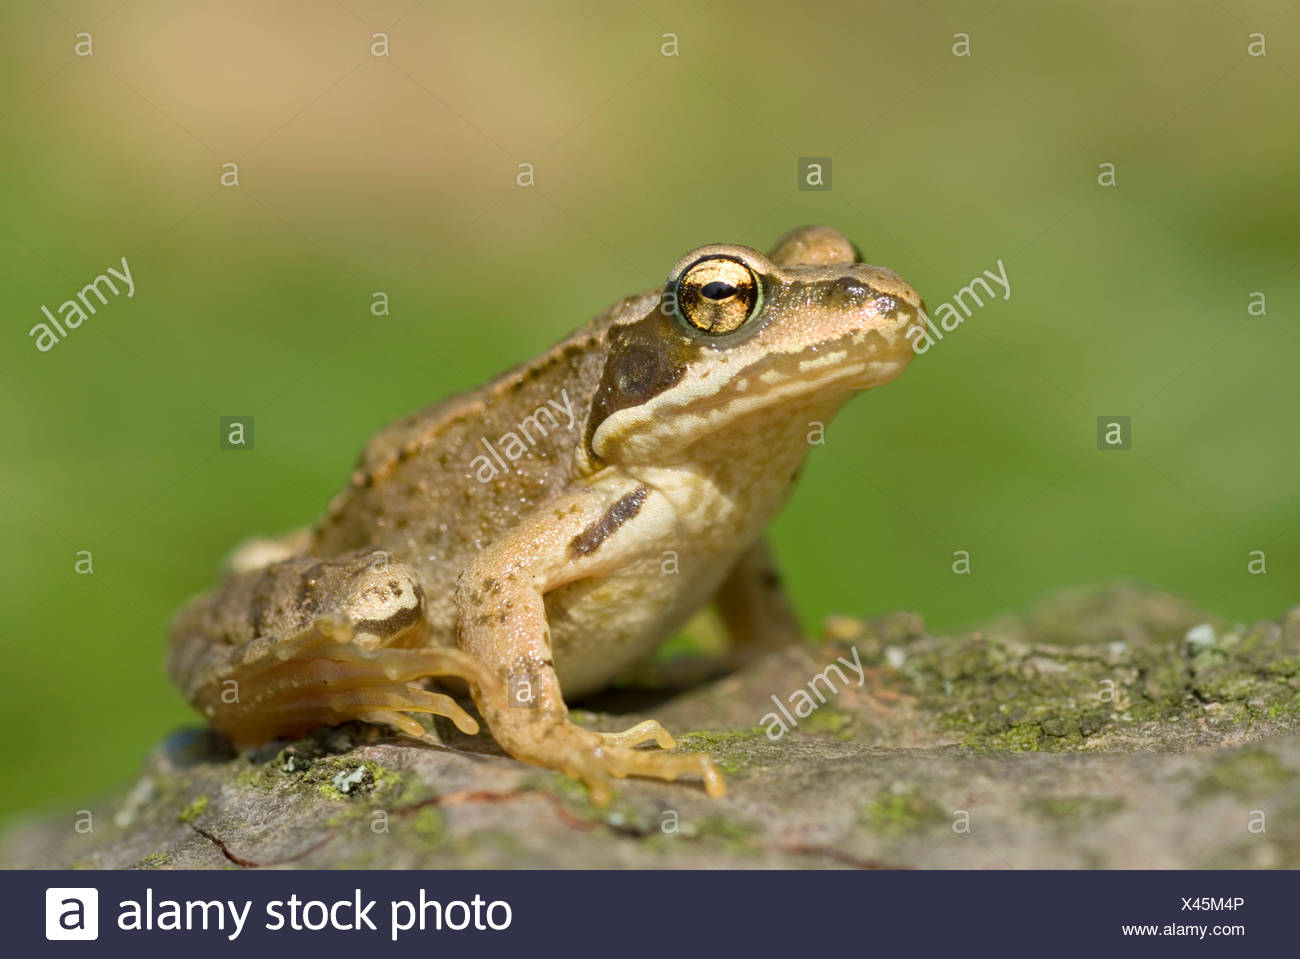 common frog, grass frog (Rana temporaria), sitting on a stone, Switzerland - Stock Image